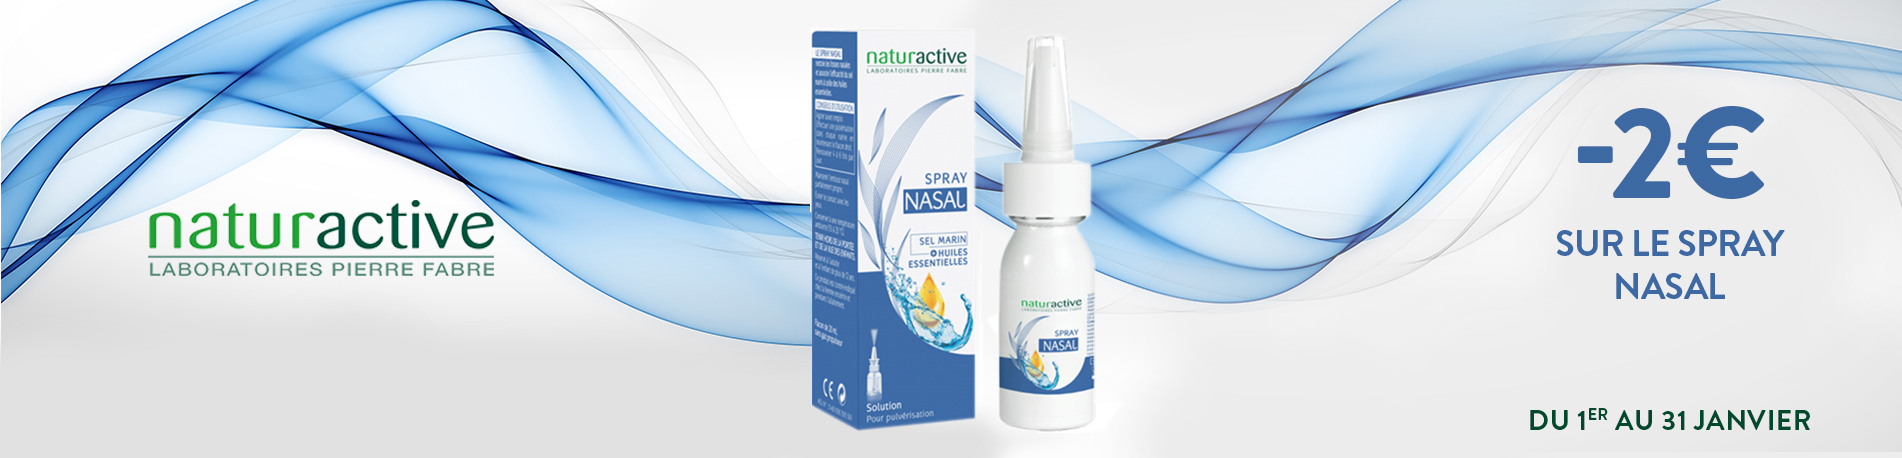 Promotion Nature active Spray nasal